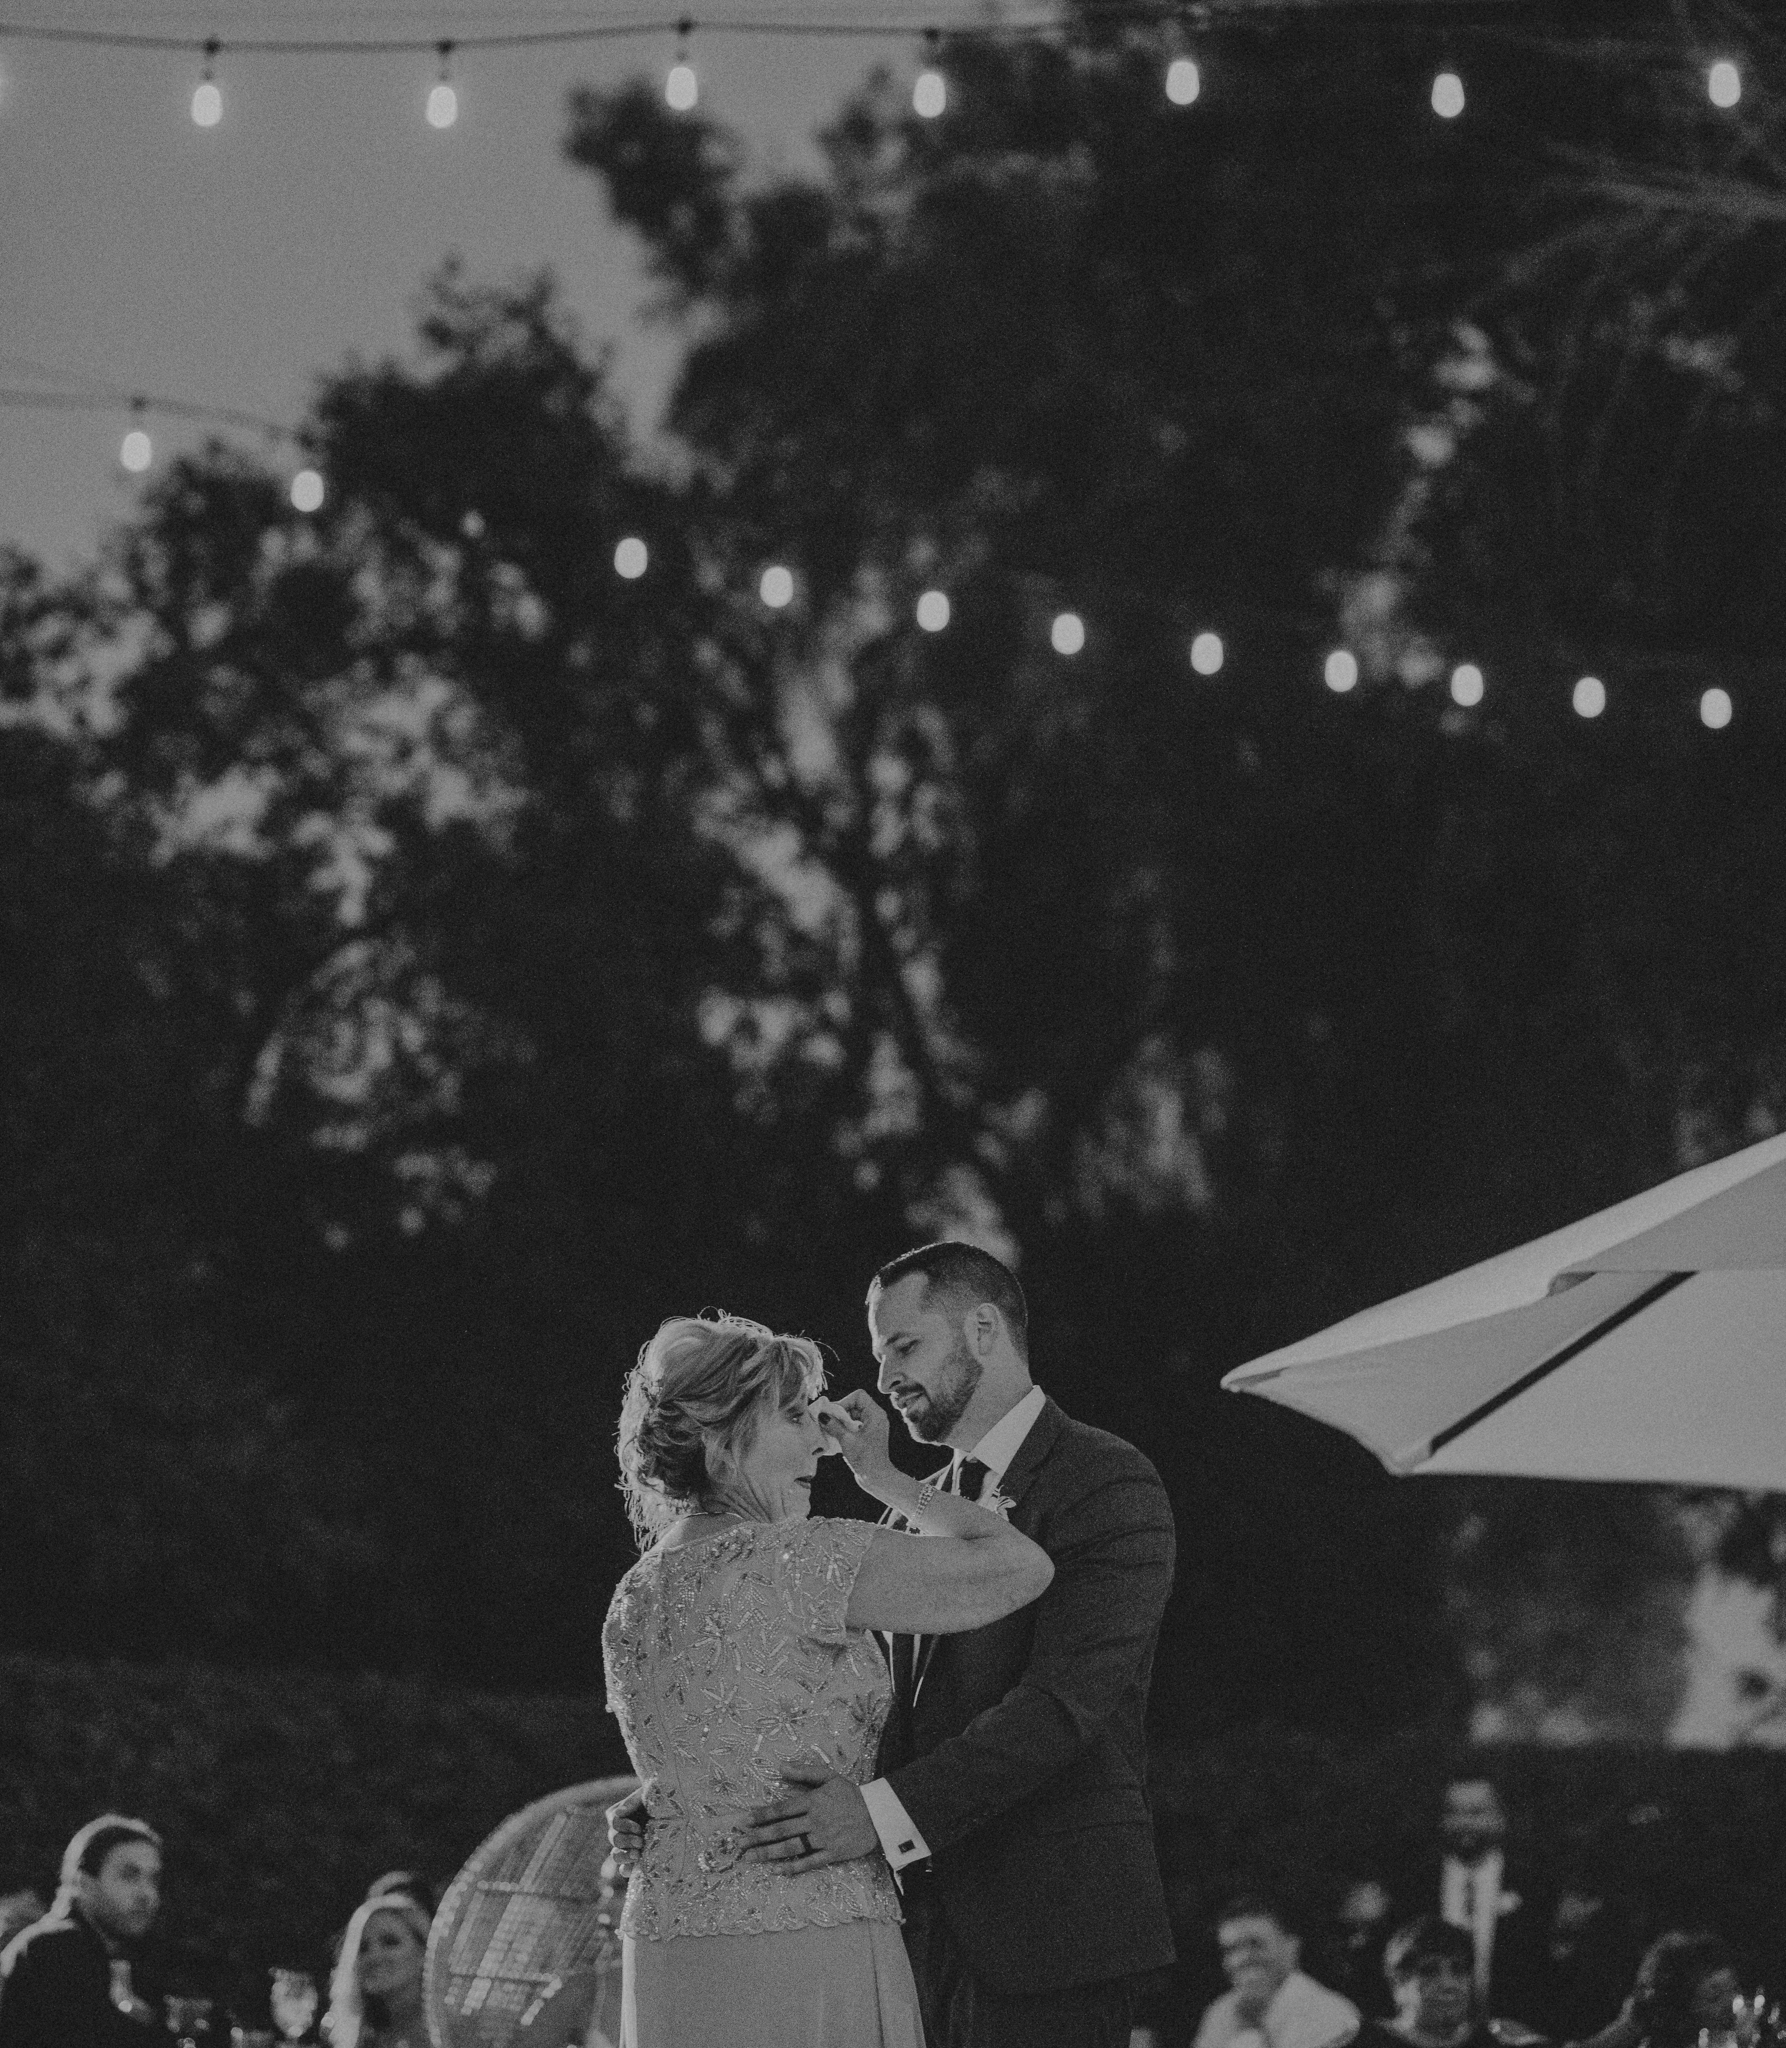 Wedding Photographer in Los Angeles - The Clarke Estate Wedding - IsaiahAndTaylor.com-084.jpg